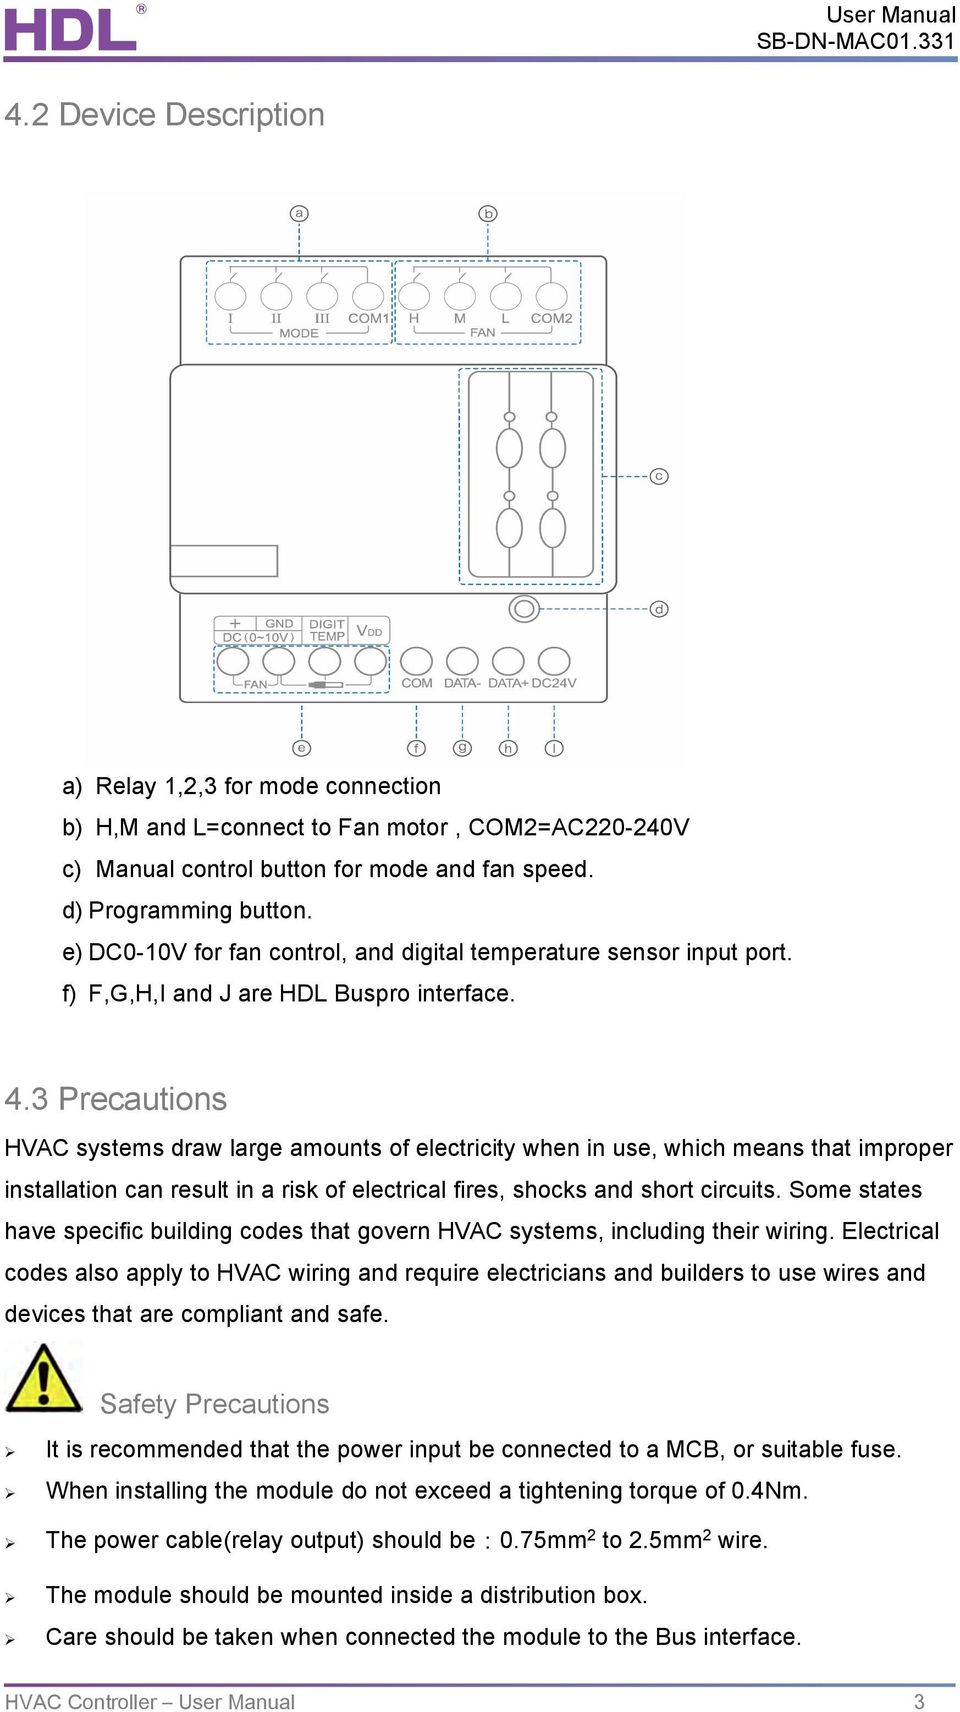 Wiring For Hvac Control Systems User Manual Air Conditioner Controller Sb Dn Mac01331 Pdf 3 Precautions Draw Large Amounts Of Electricity When In Use Which Means That